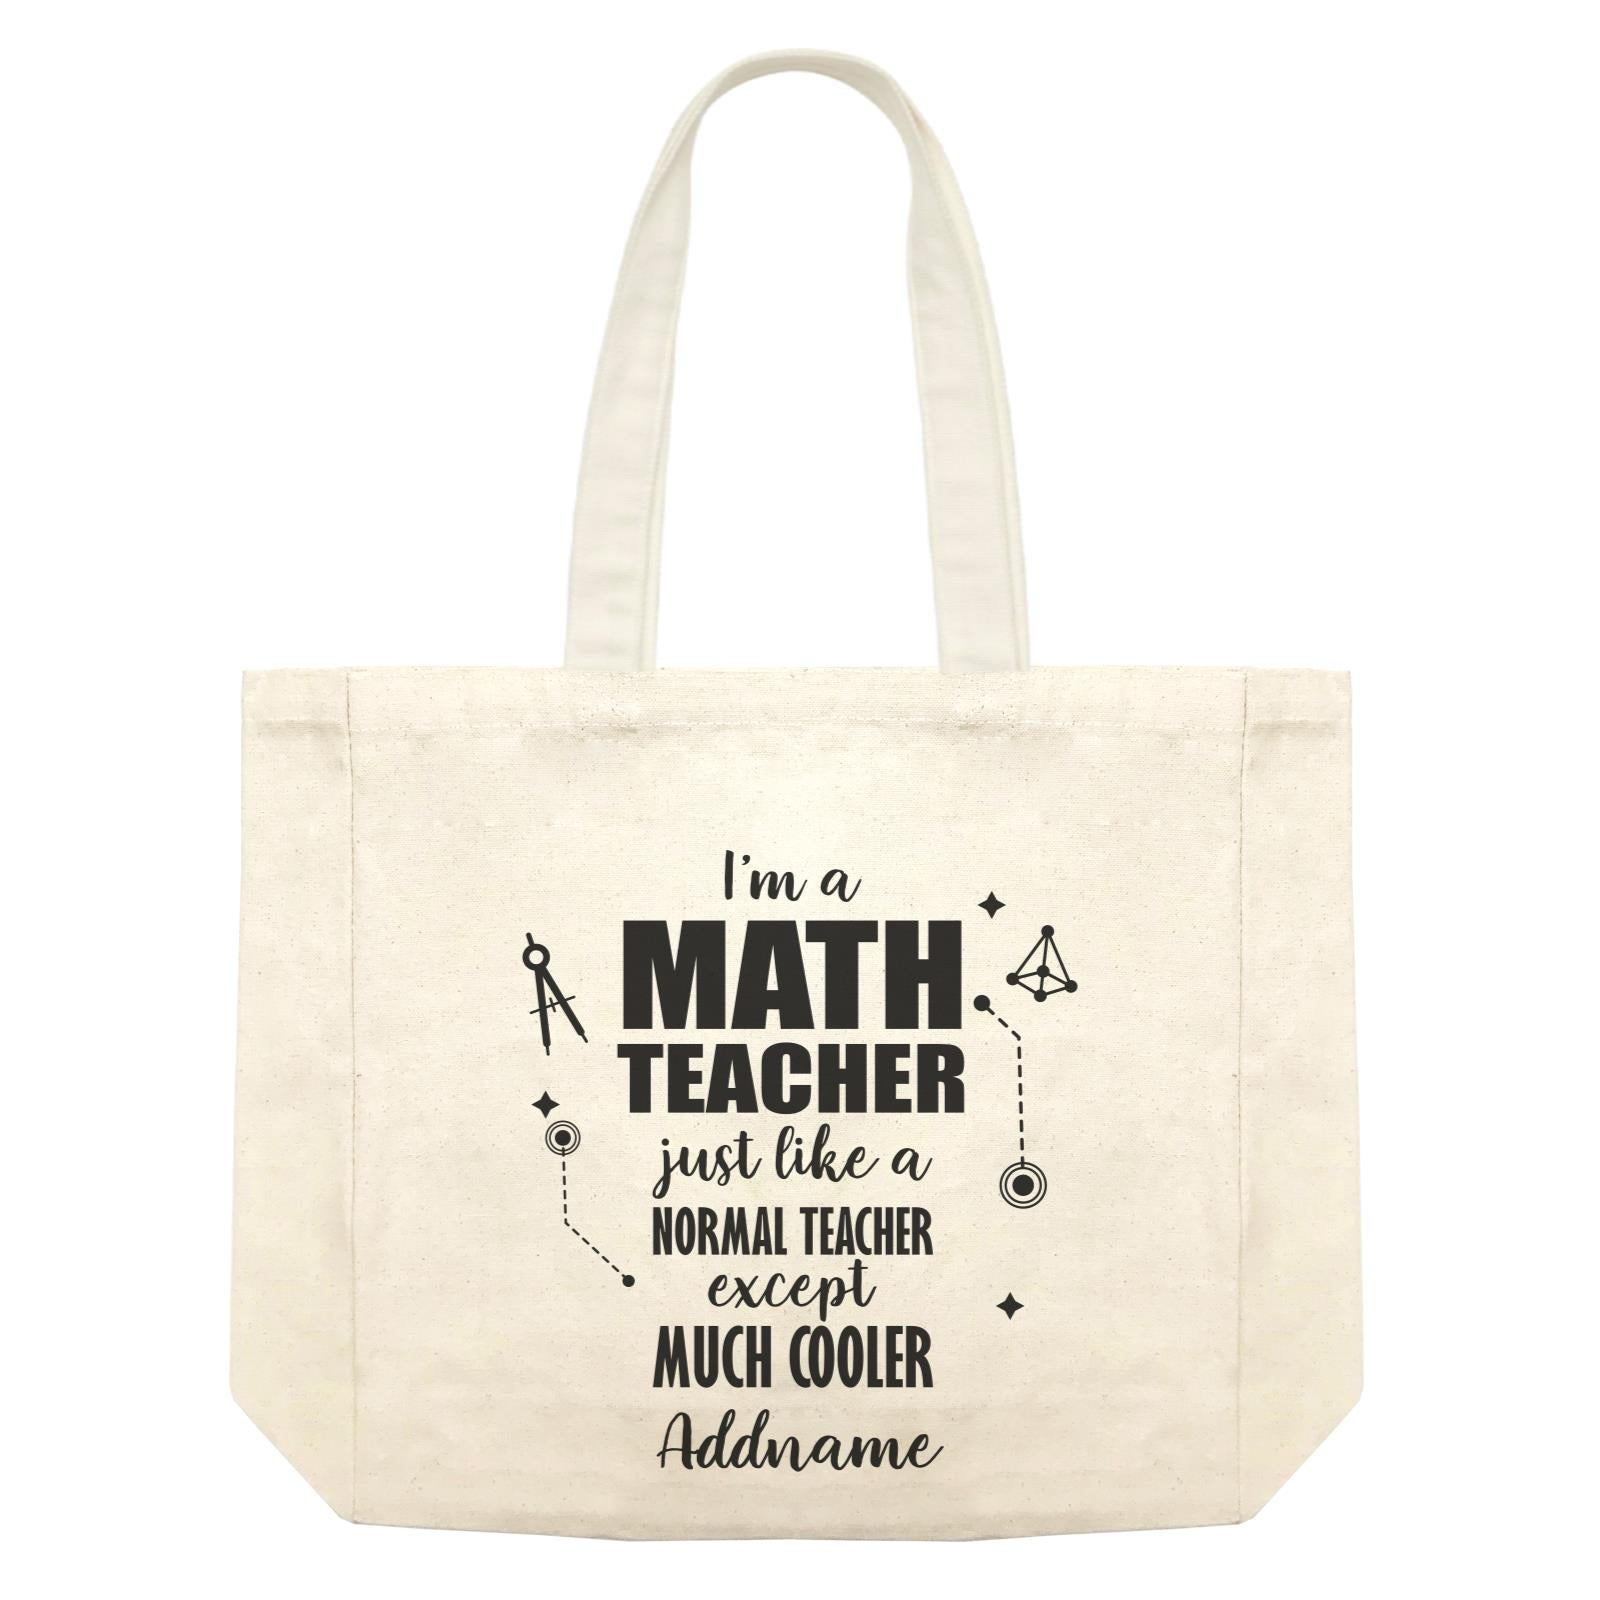 Subject Teachers 1 I'm A Math Teacher Addname Shopping Bag